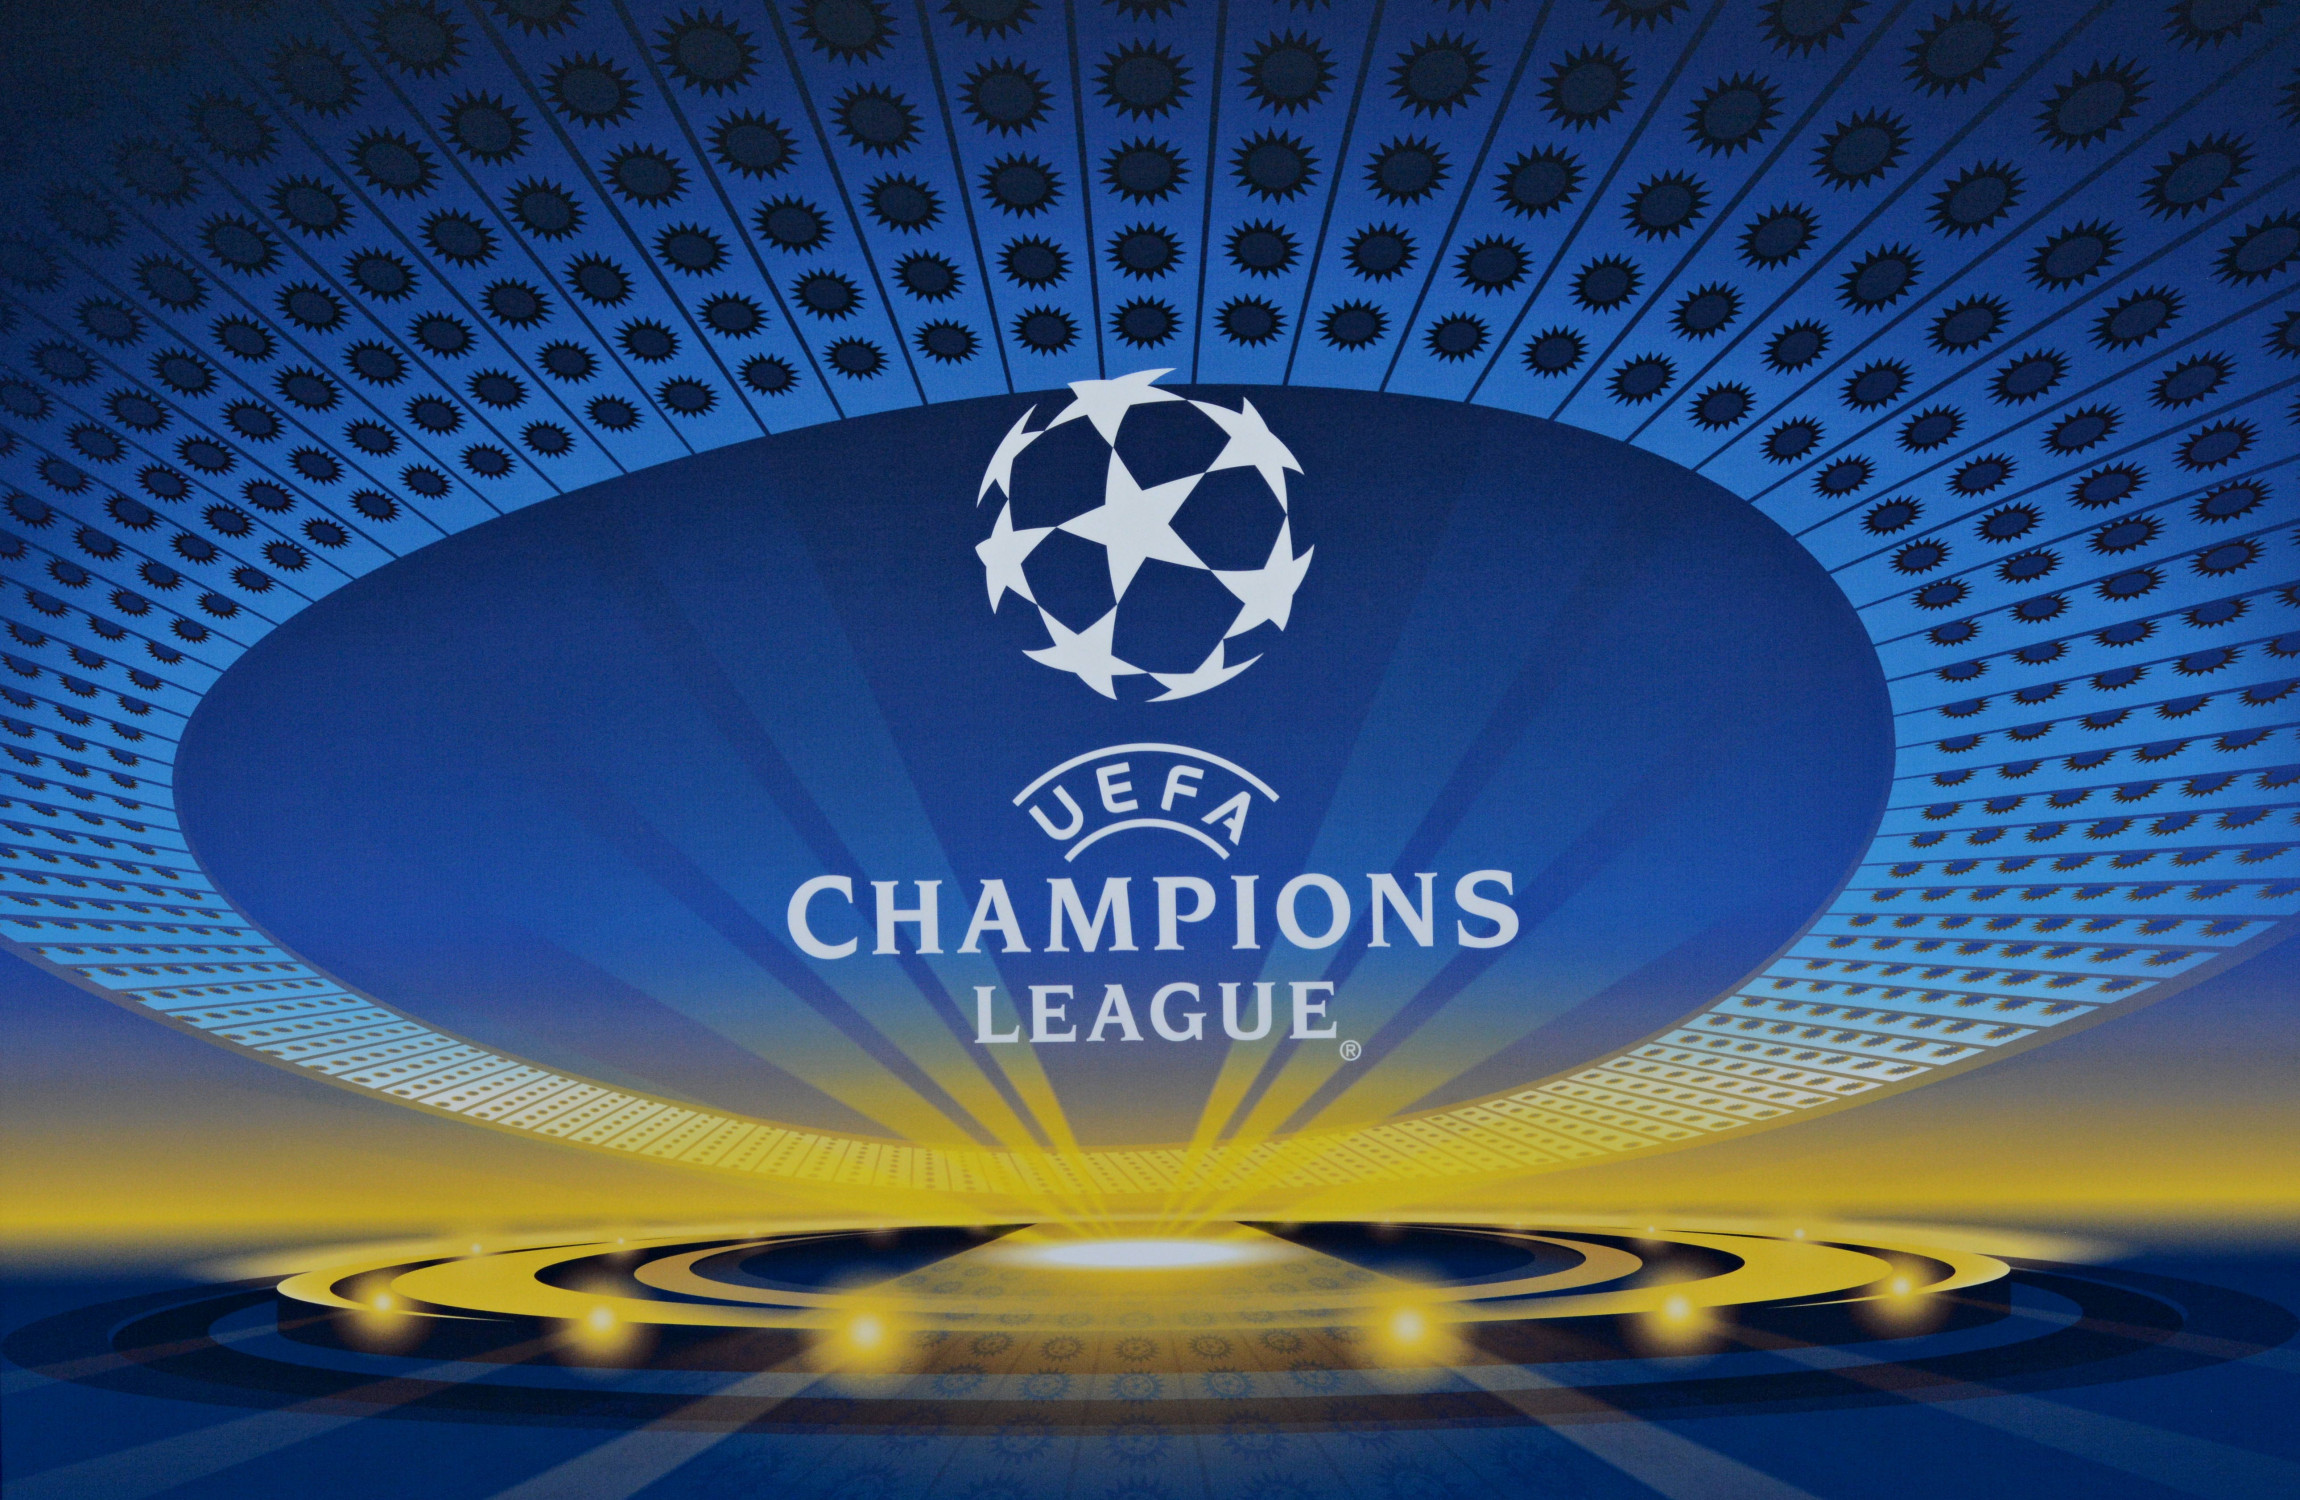 BT Sport to show UEFA Champions League Final free online